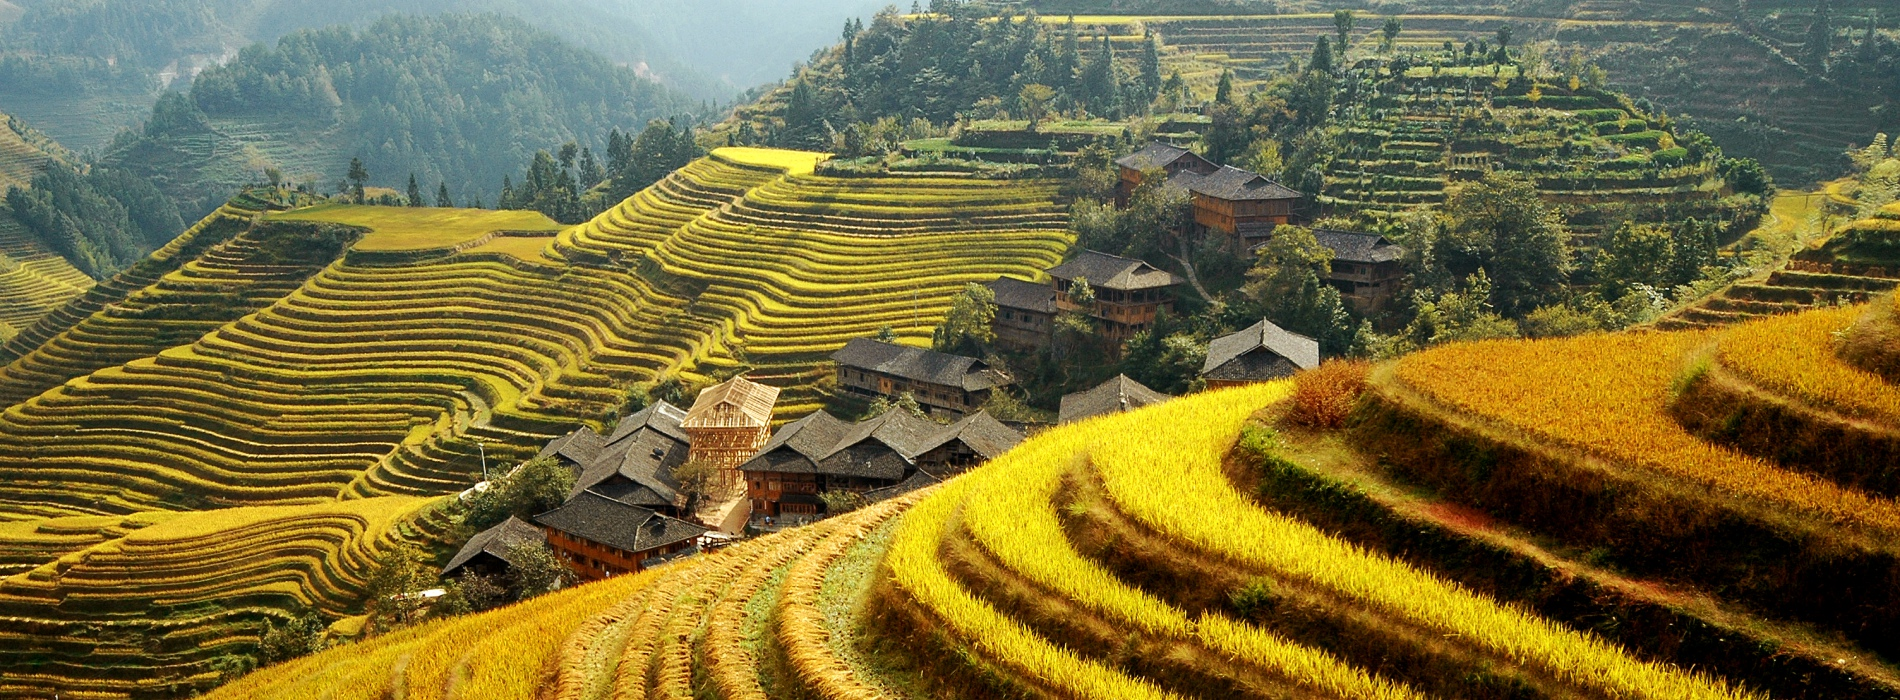 One day group tour of Guilin Longji terraced fields